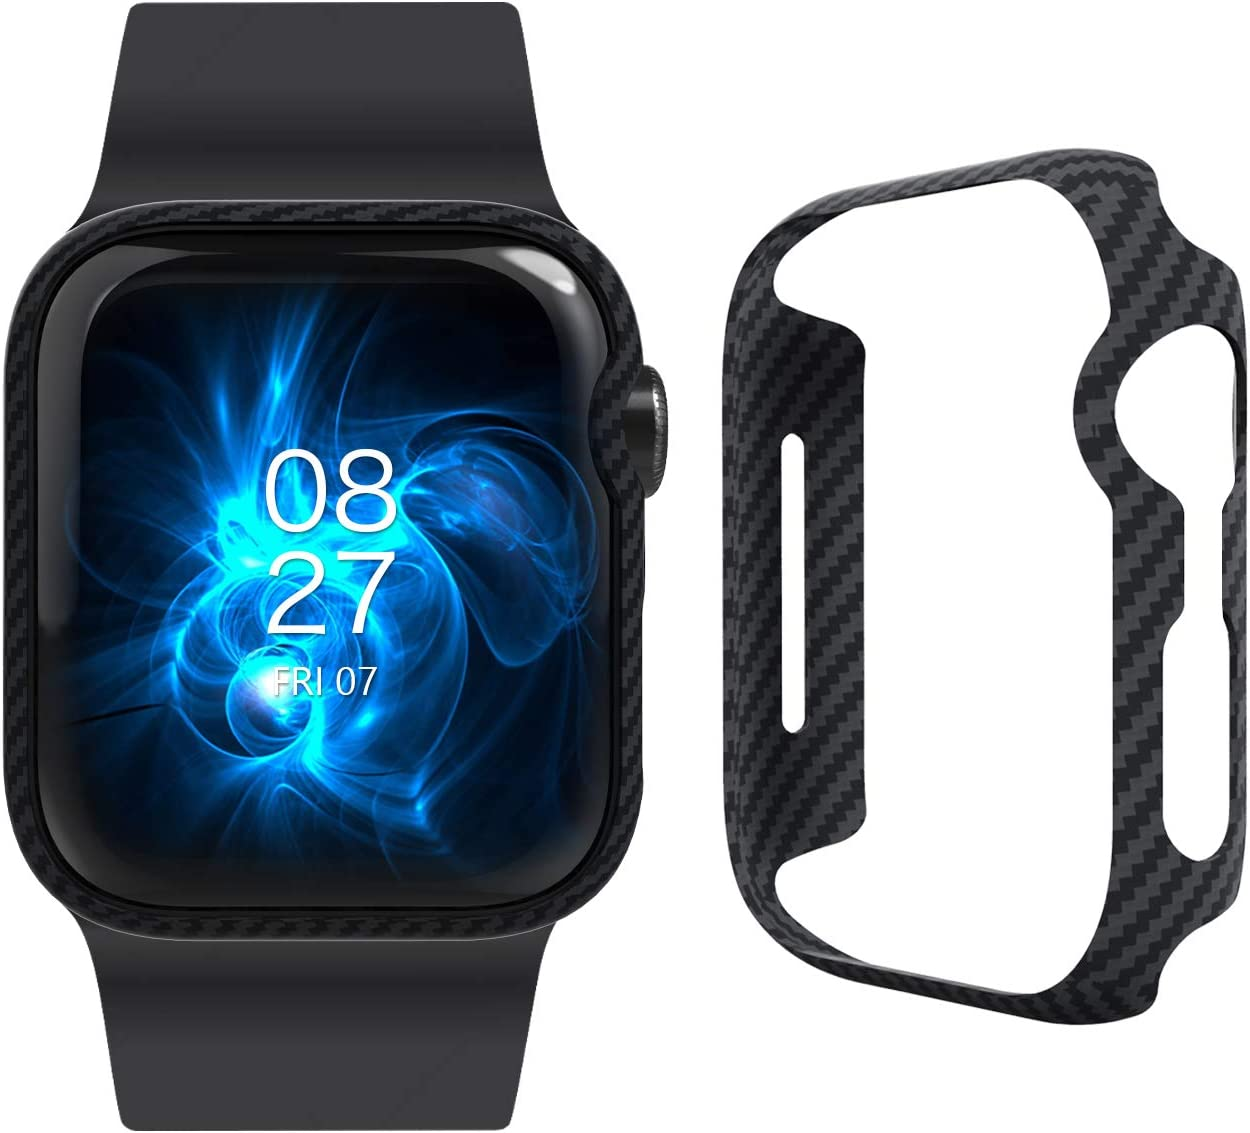 PITAKA Ultra Slim and Thin Case for Apple Watch 40mm Series [Air Case] 6/SE/5/4 Elegant Genuine Aramid Fiber Exquisite Refined Minimalist Watch Case with Snug Fitment - Black(Twill)